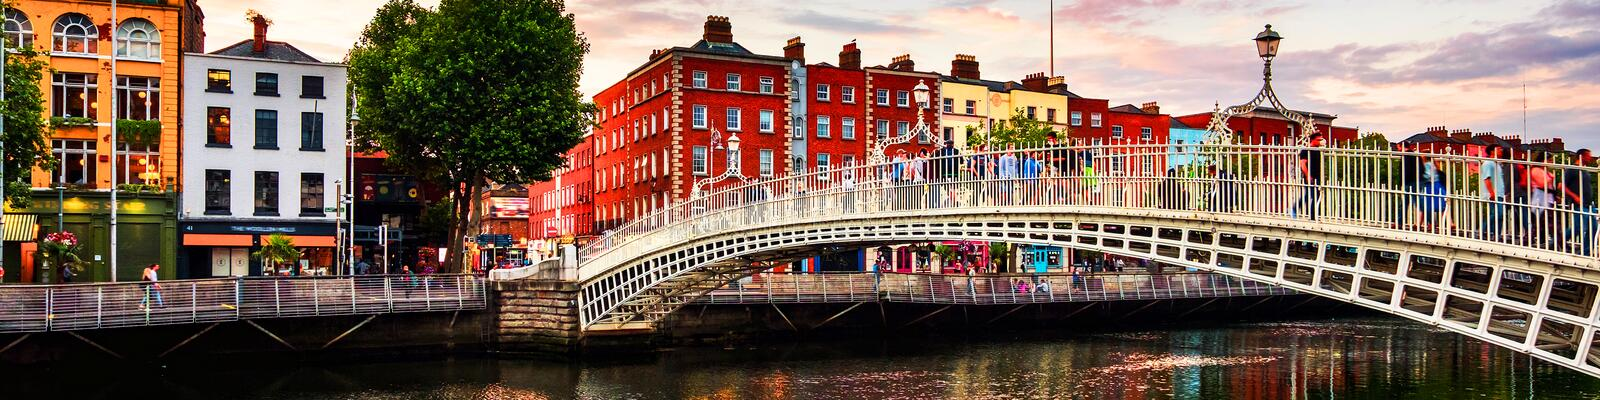 Night view of famous illuminated Ha Penny Bridge in Dublin, Ireland at sunset royalty free stock photos